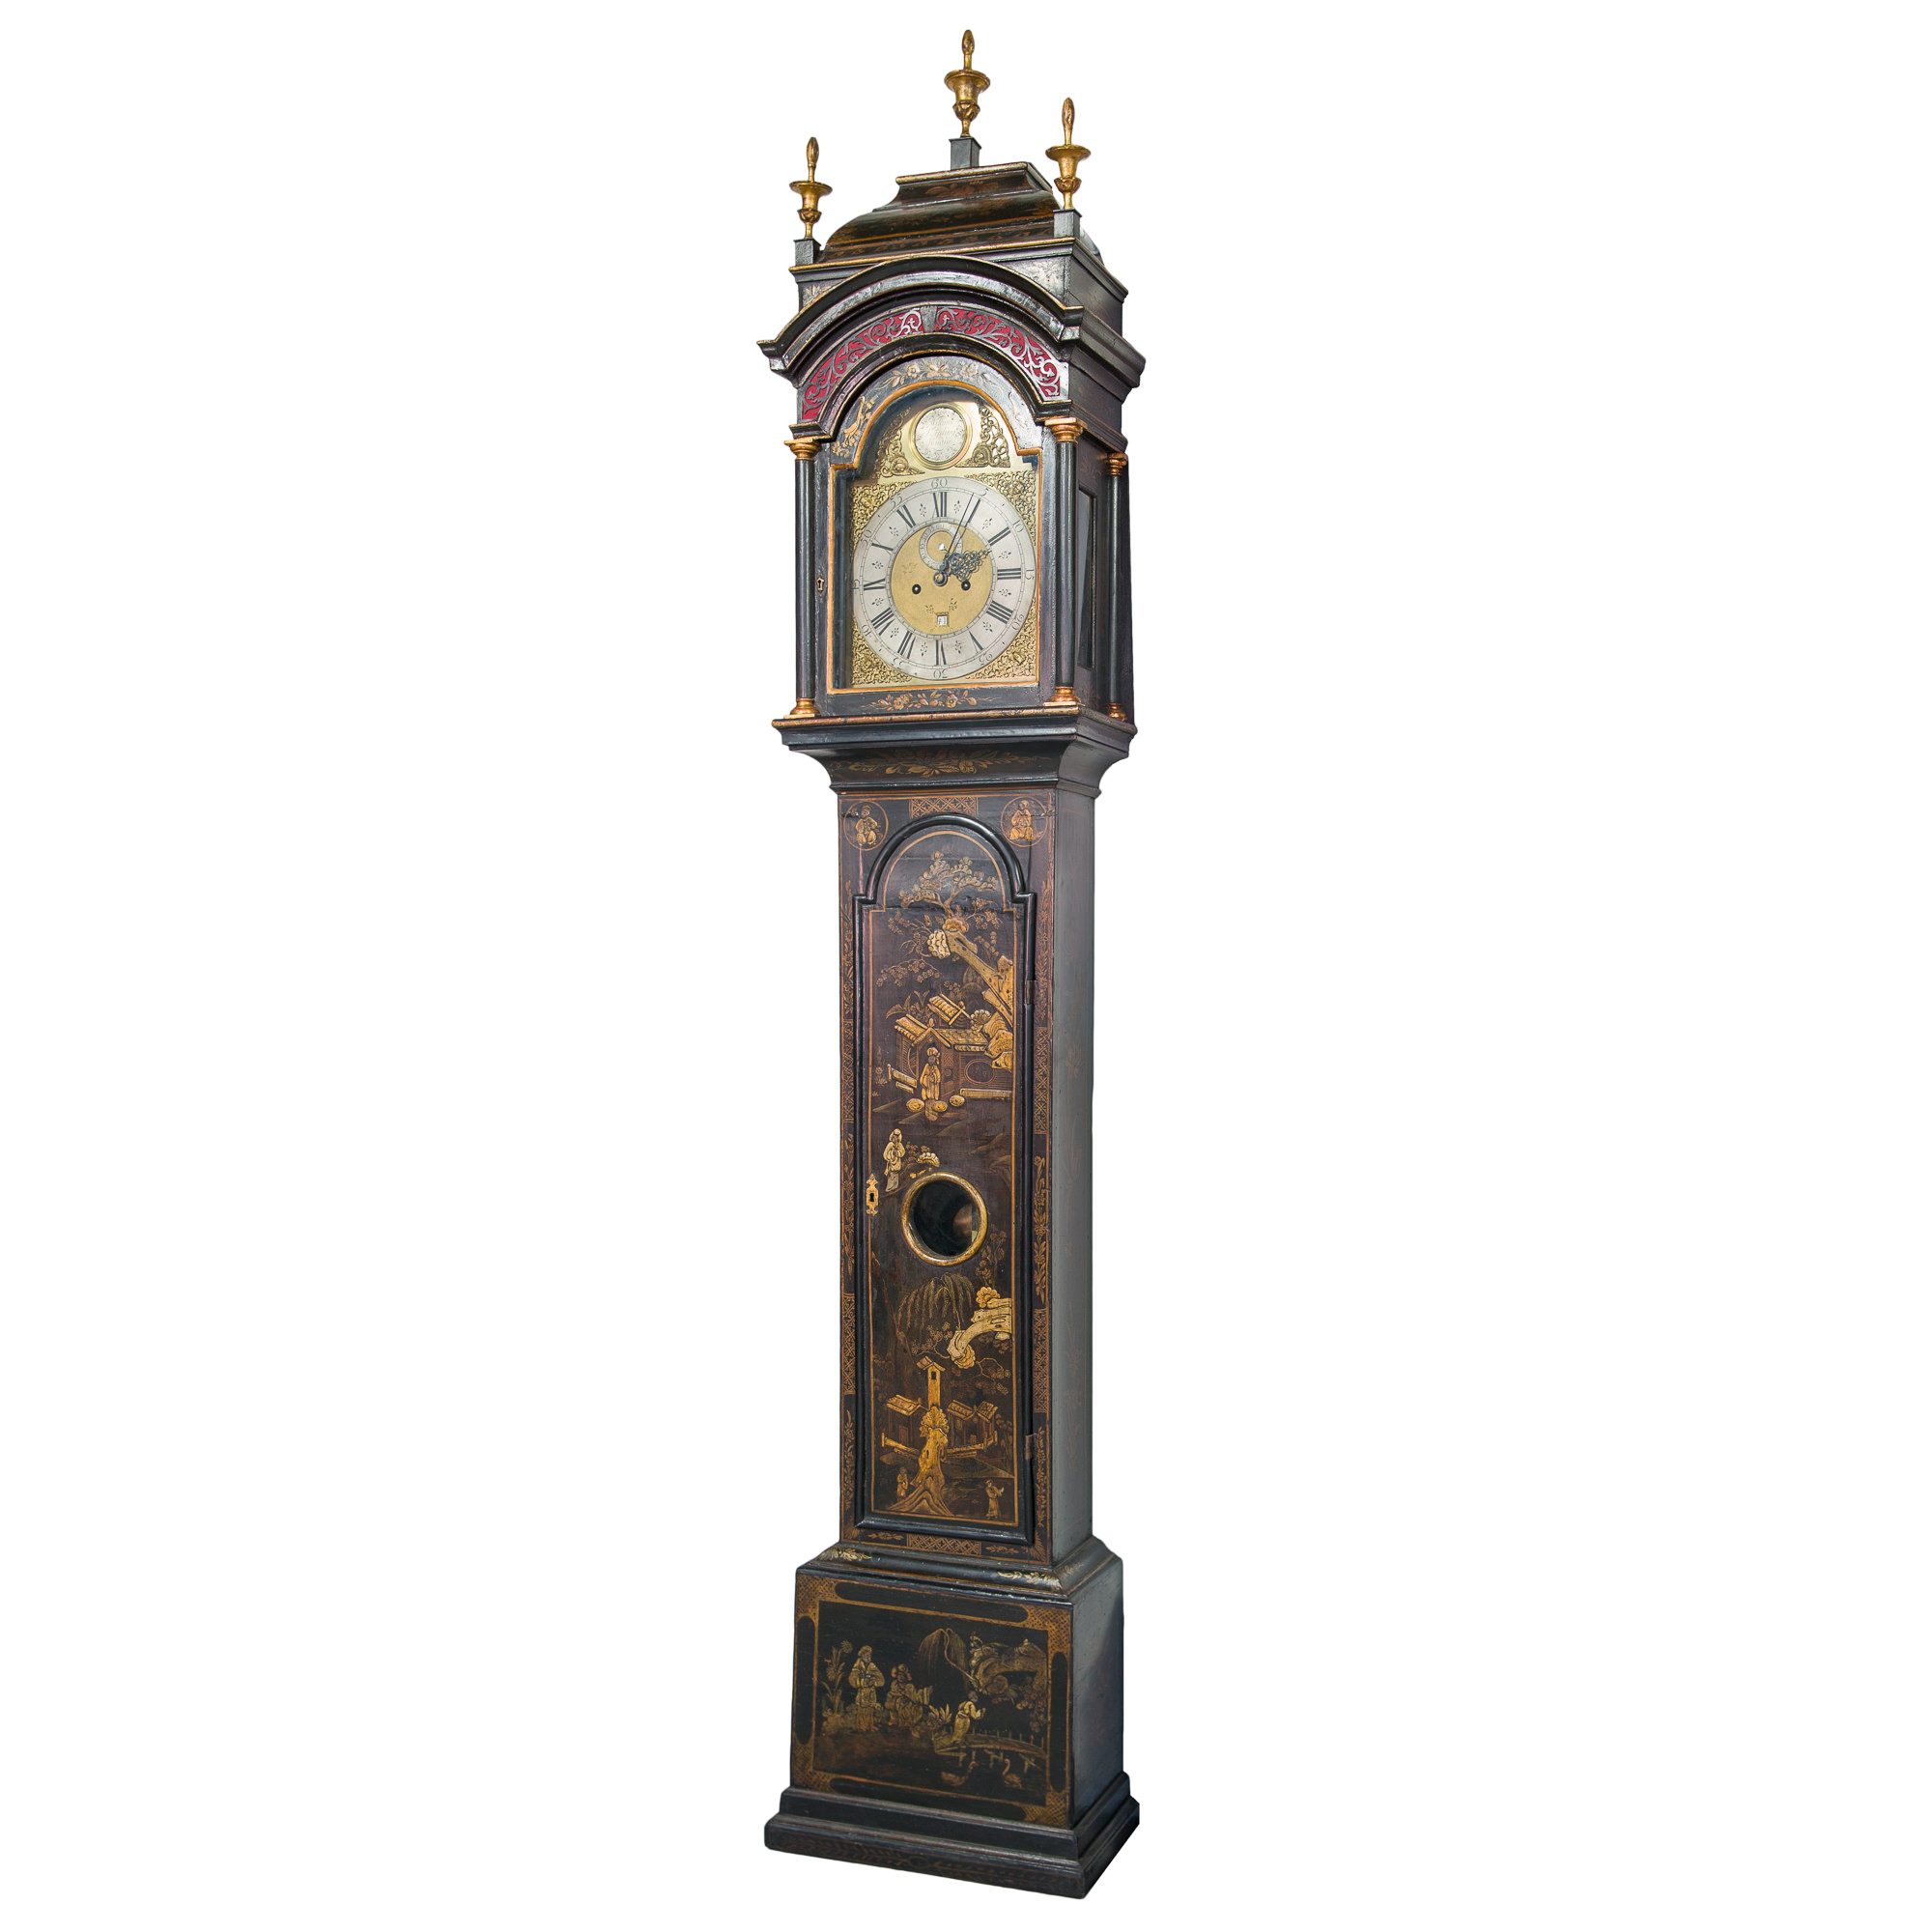 'George II Chinoiserie Longcase Clock by William Kipling of London Circa 1845'